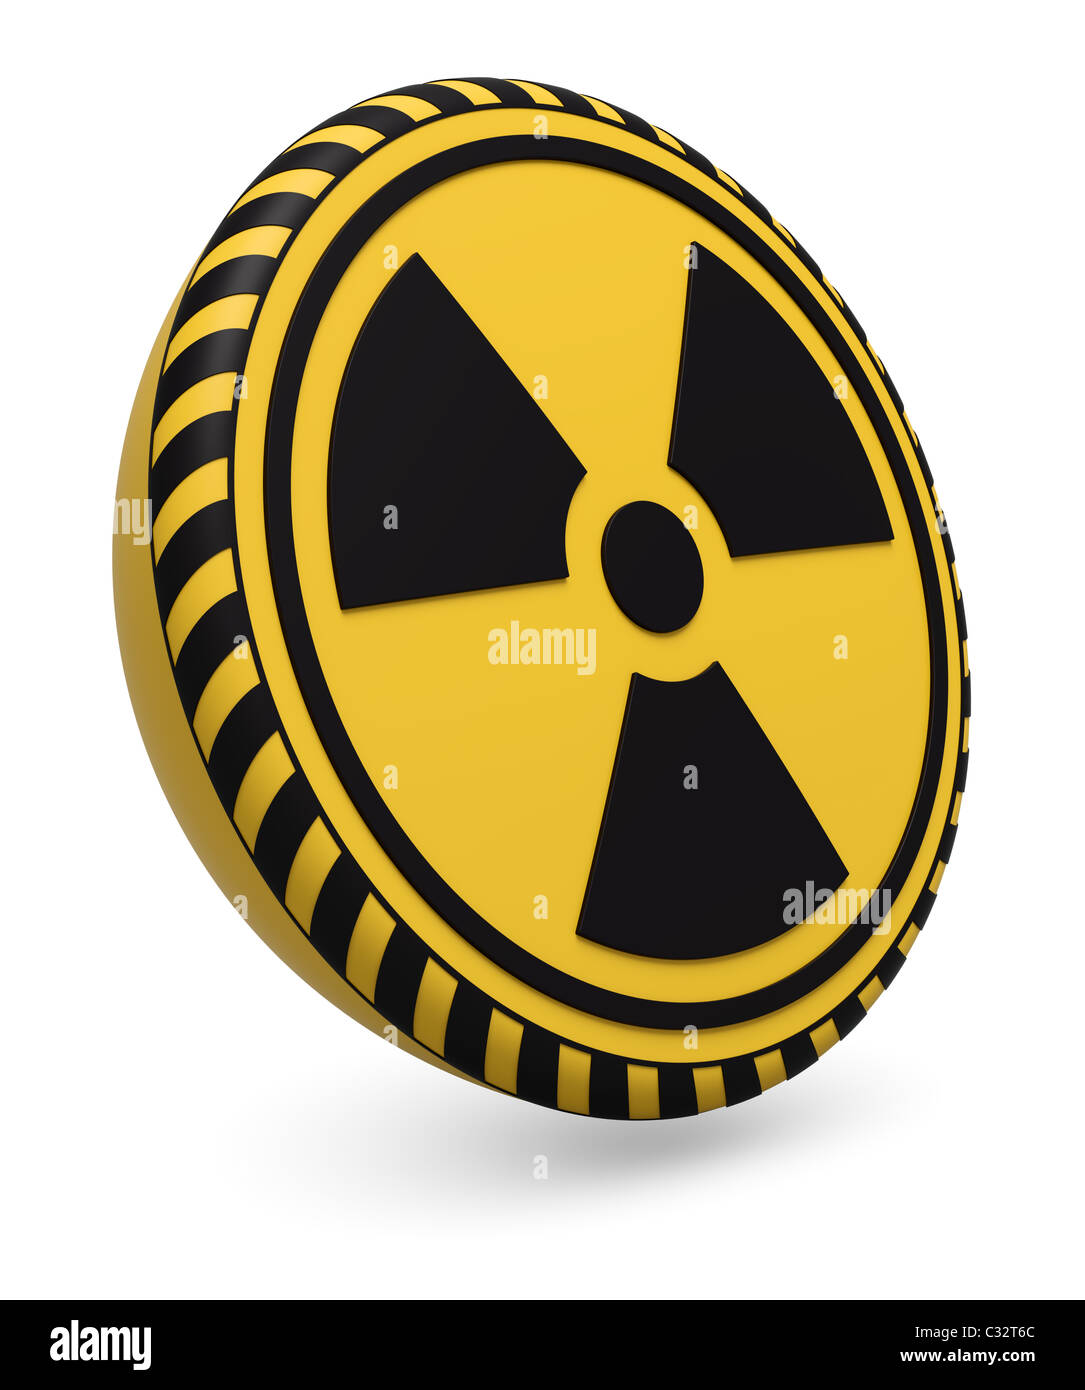 Radioactive Warning Symbol Stock Photos Radioactive Warning Symbol